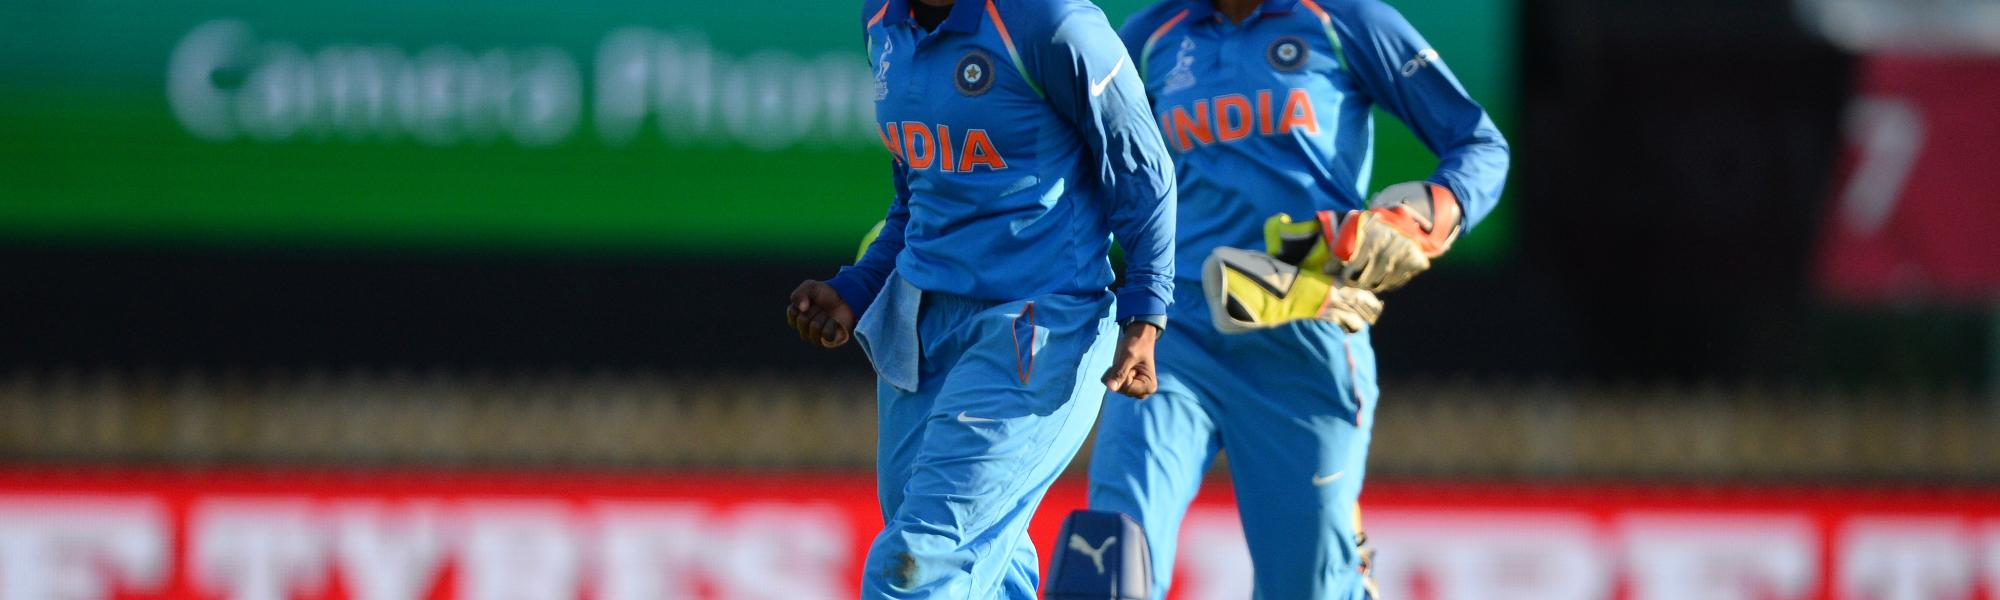 Deepti Sharma took three vital wickets in the tournament opener on India's way to victory – including the scalp of Natalie Sciver.